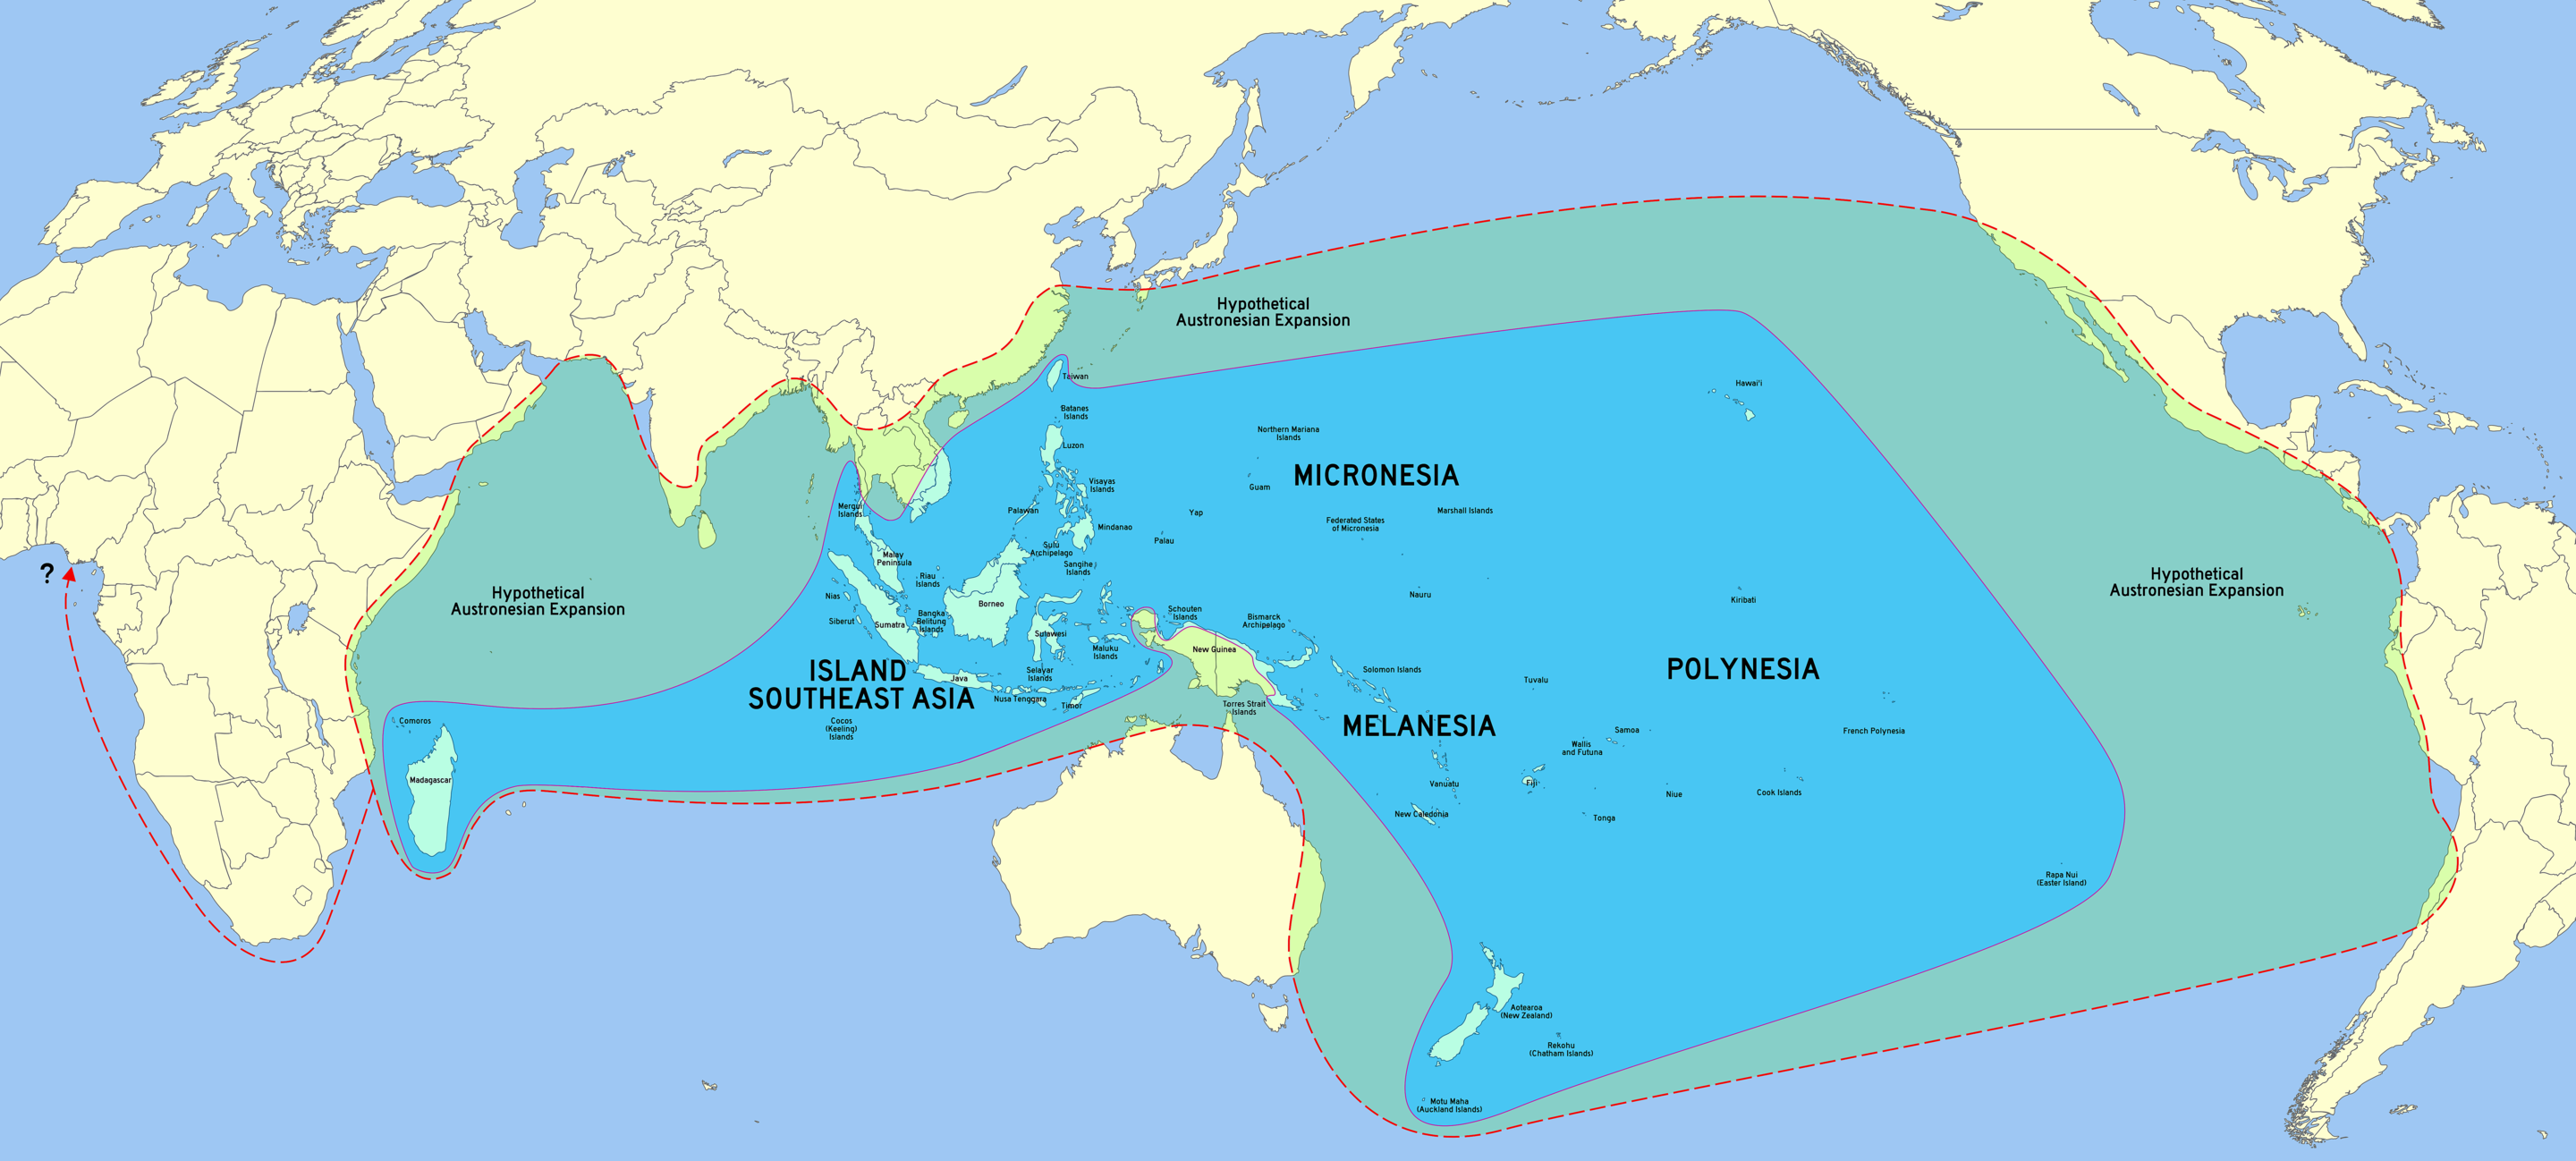 2880px-Austronesia_with_hypothetical_greatest_expansion_extent_(Blench,_2009)_01.png